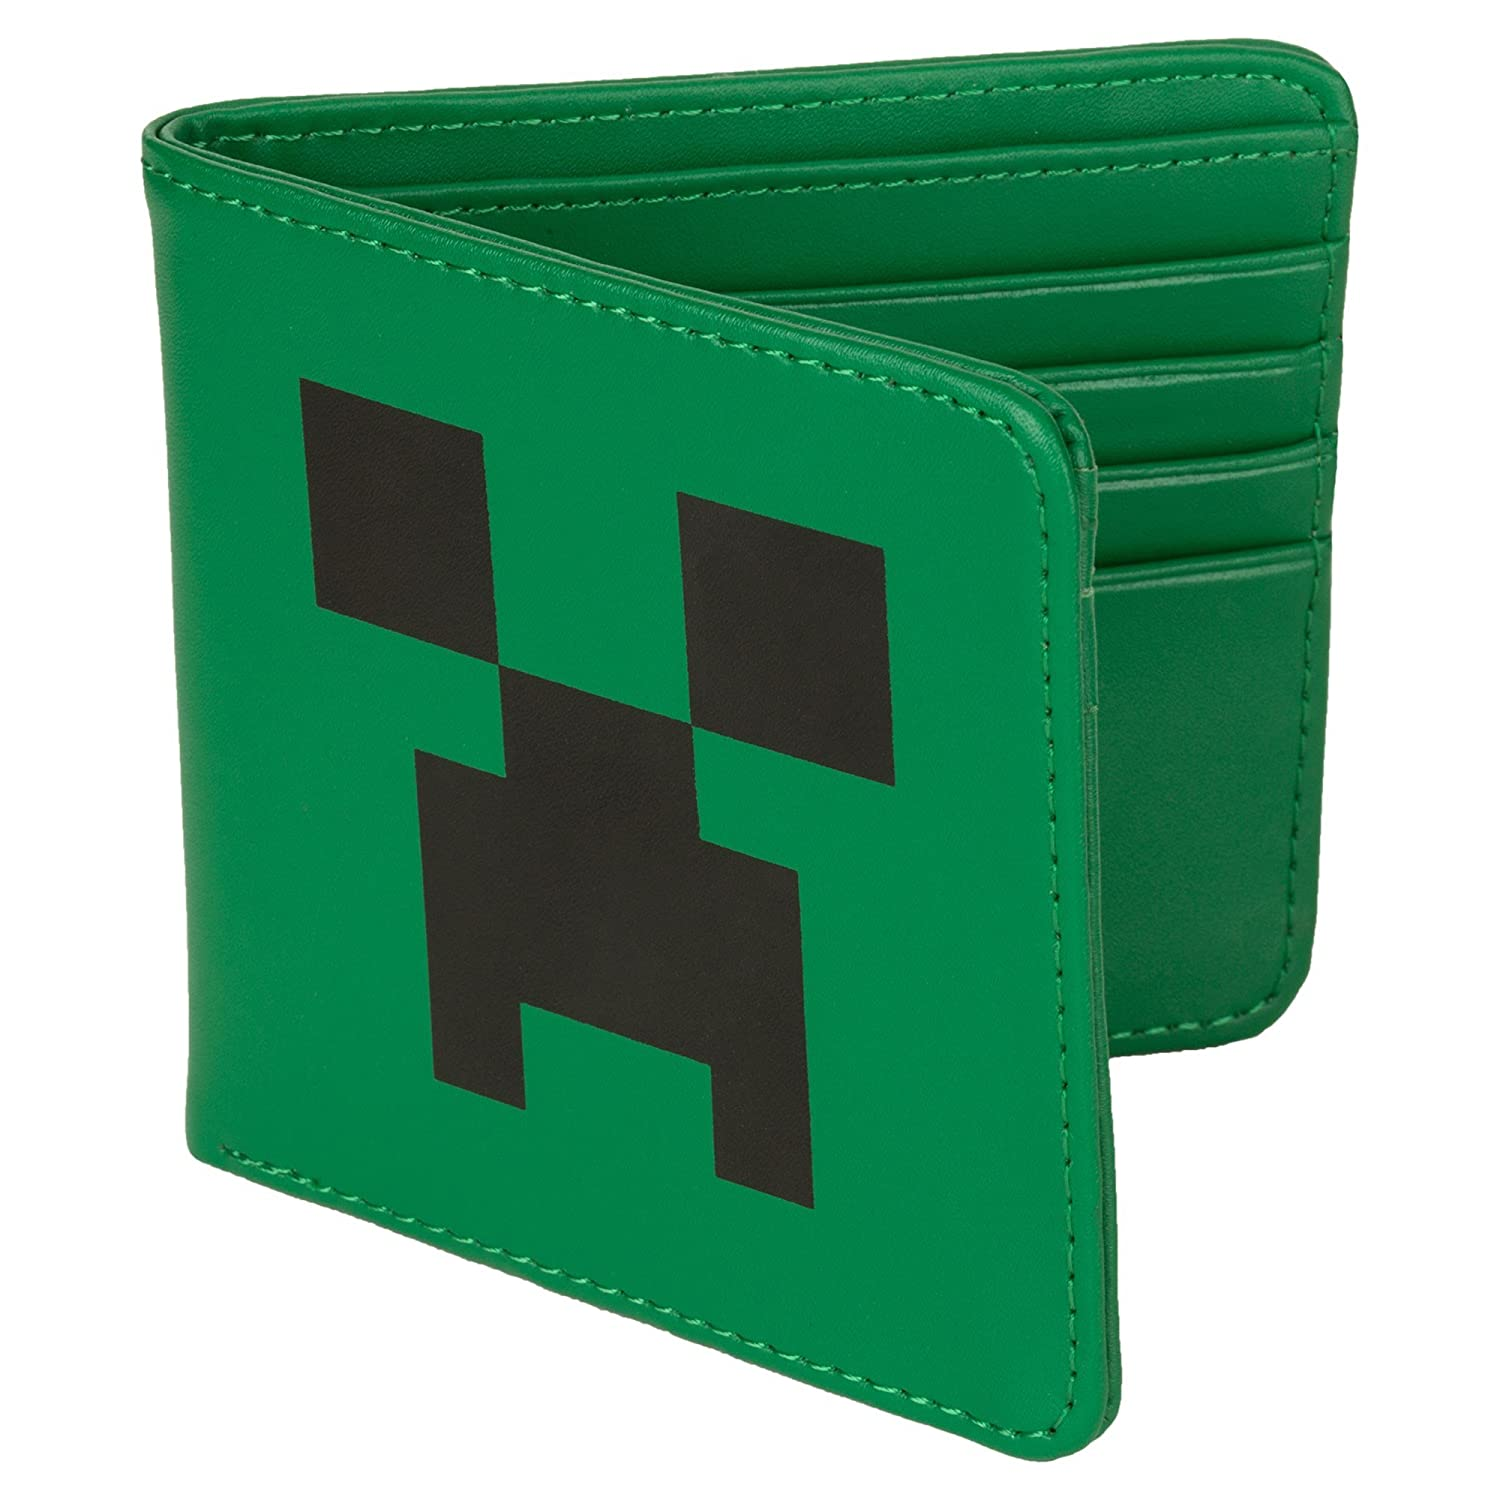 Portefeuille Minecraft - Creeper JINX 5262